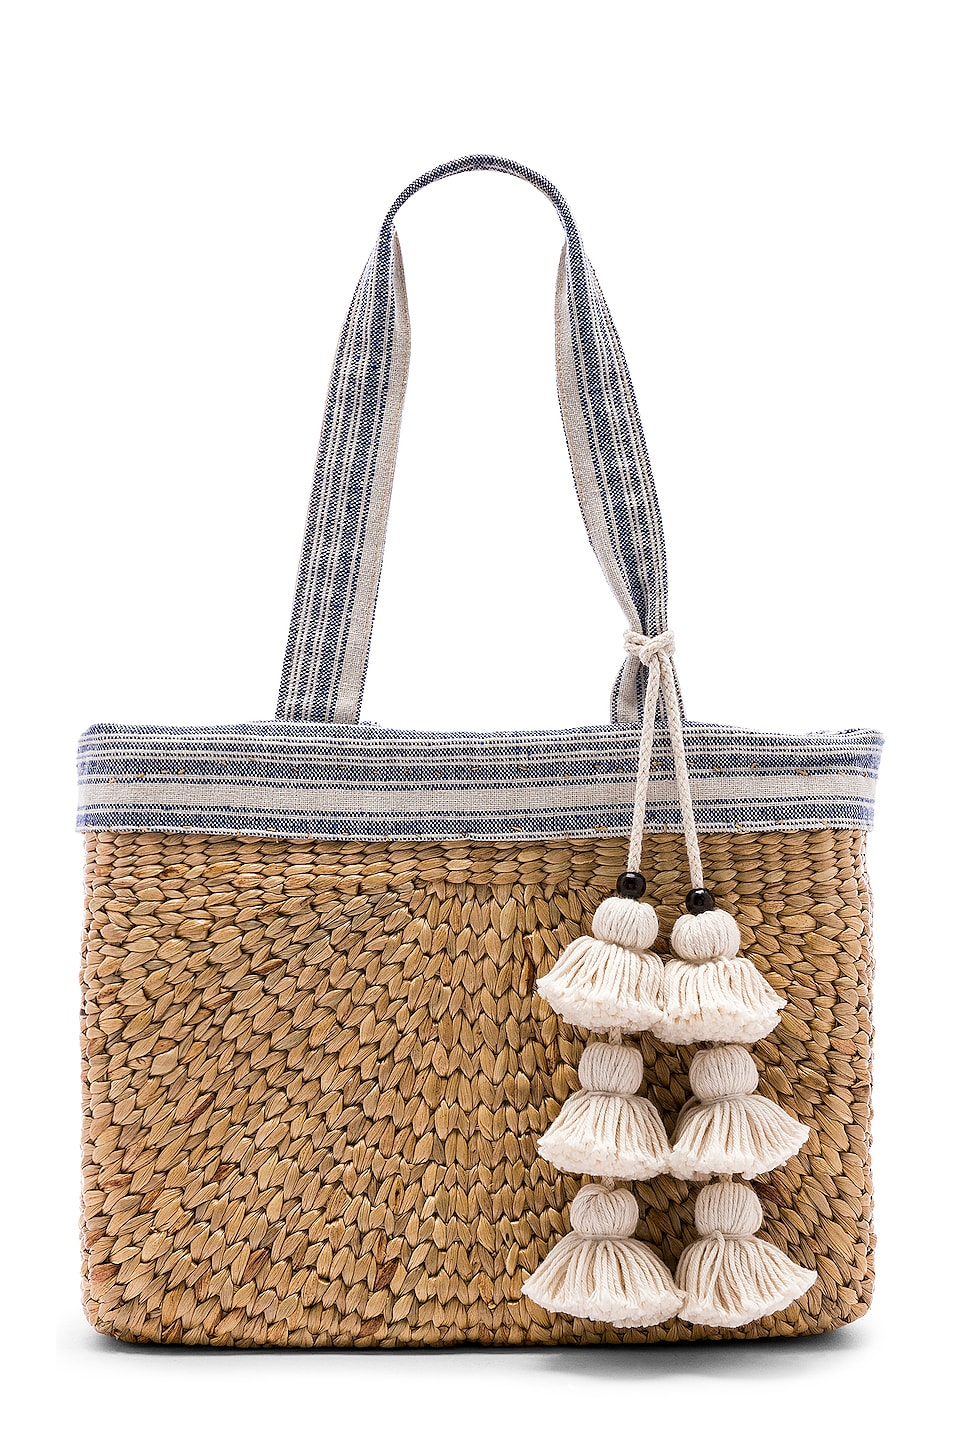 JADEtribe Sabai Small Square Basket in Indigo